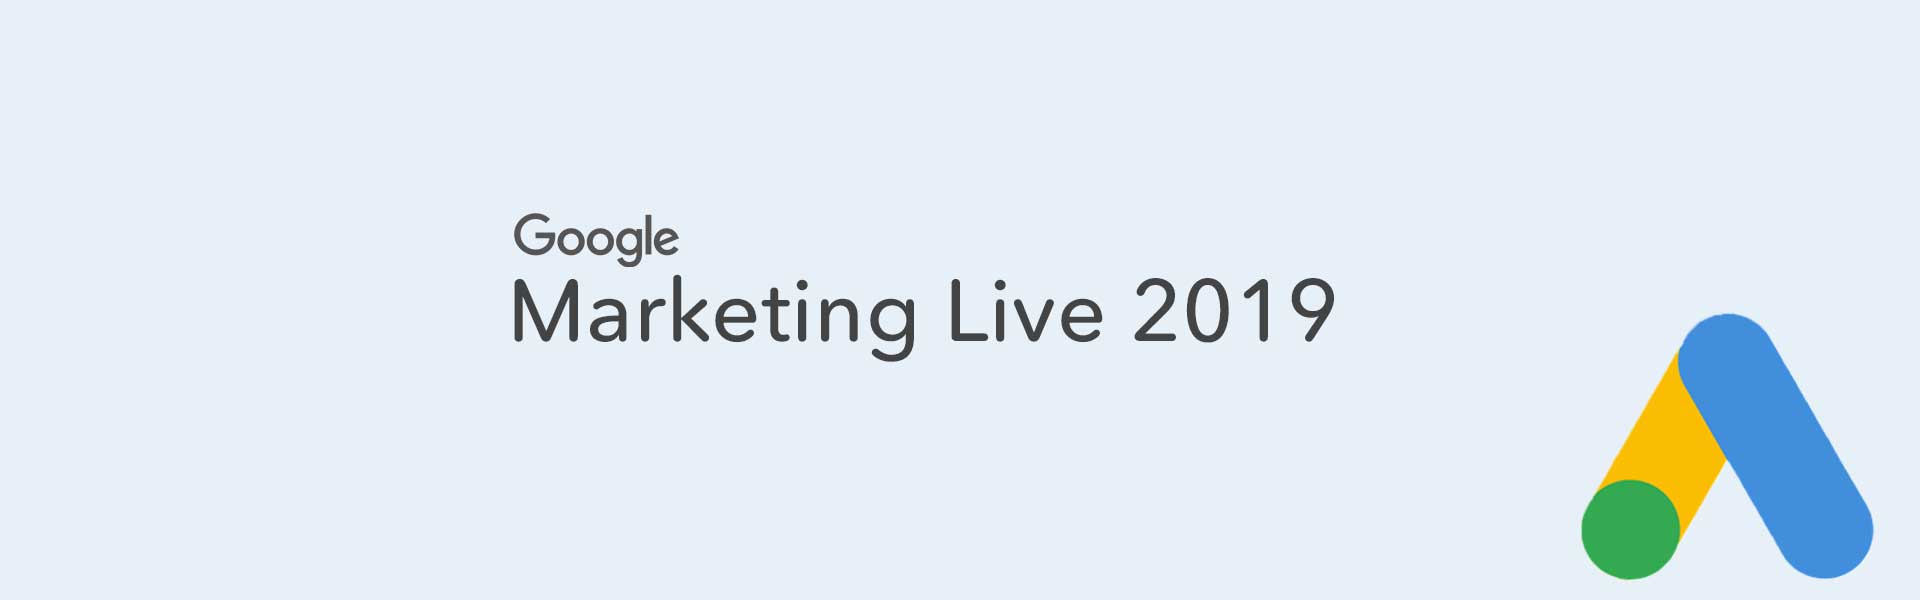 Must-Know Google Ad Changes: Google Marketing Live 2019 6